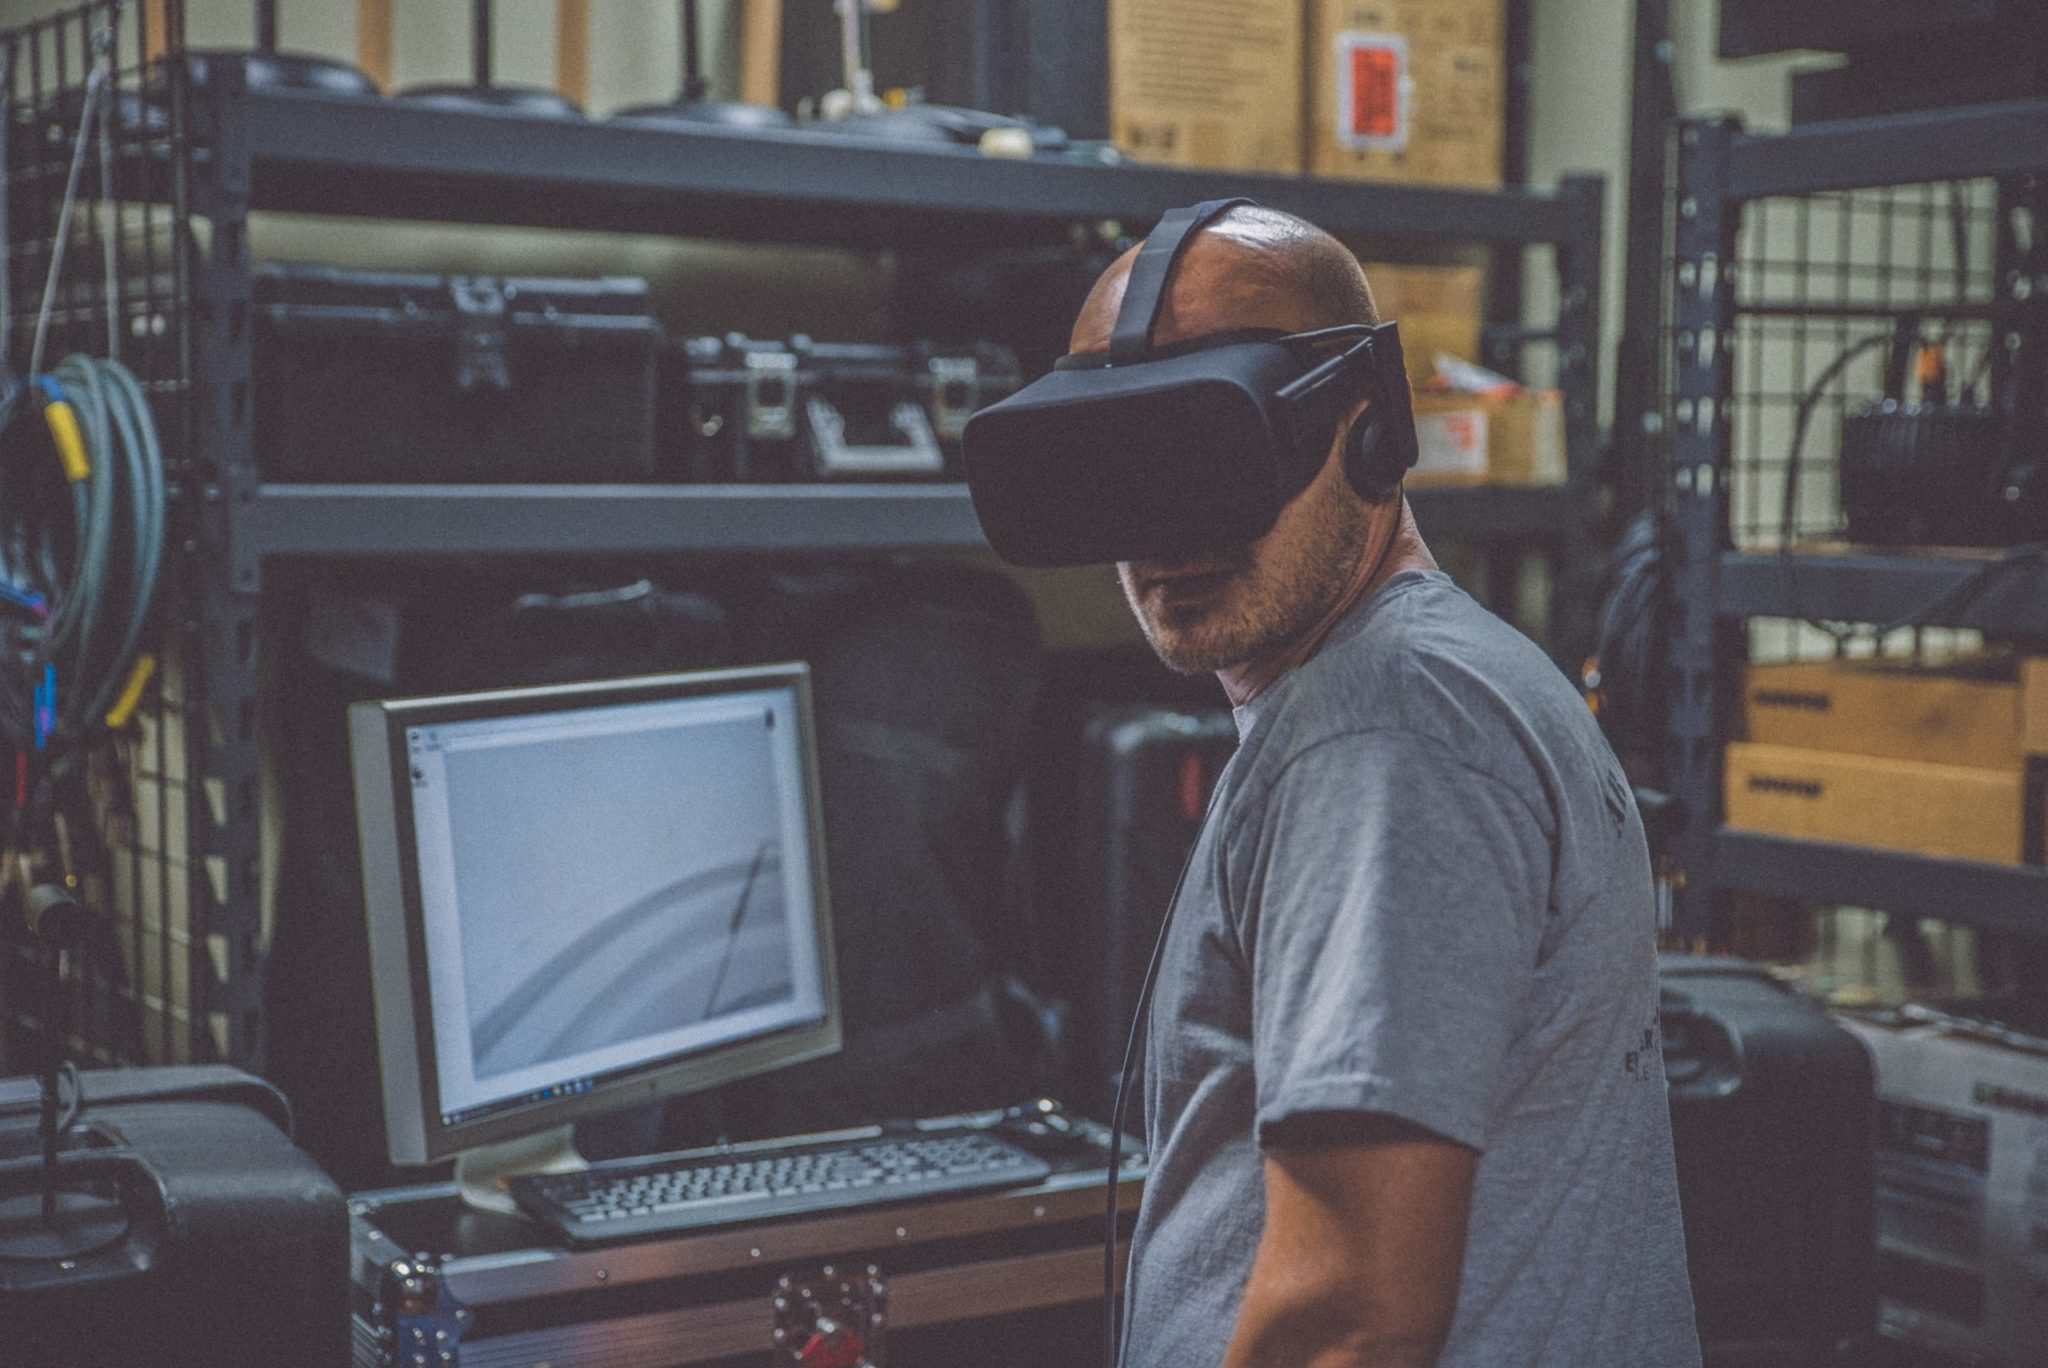 person using black VR Headset in front of computer